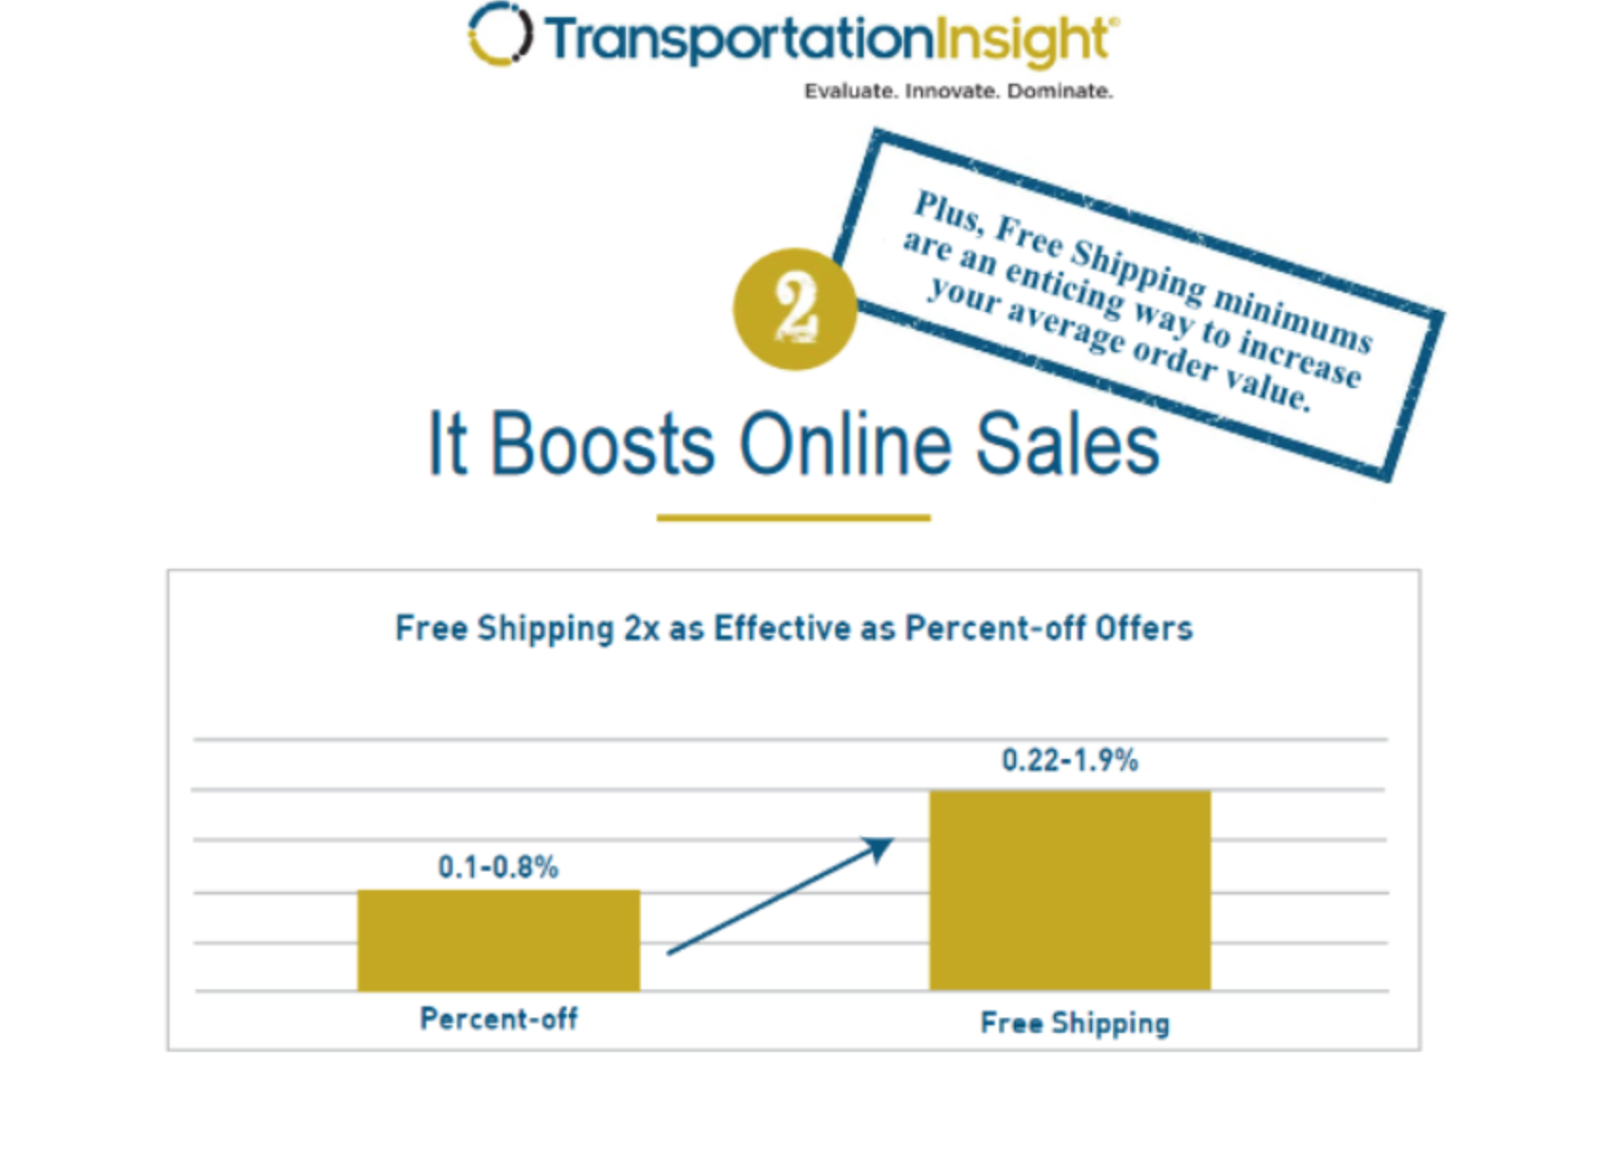 Persuasive statistics about free shipping programs